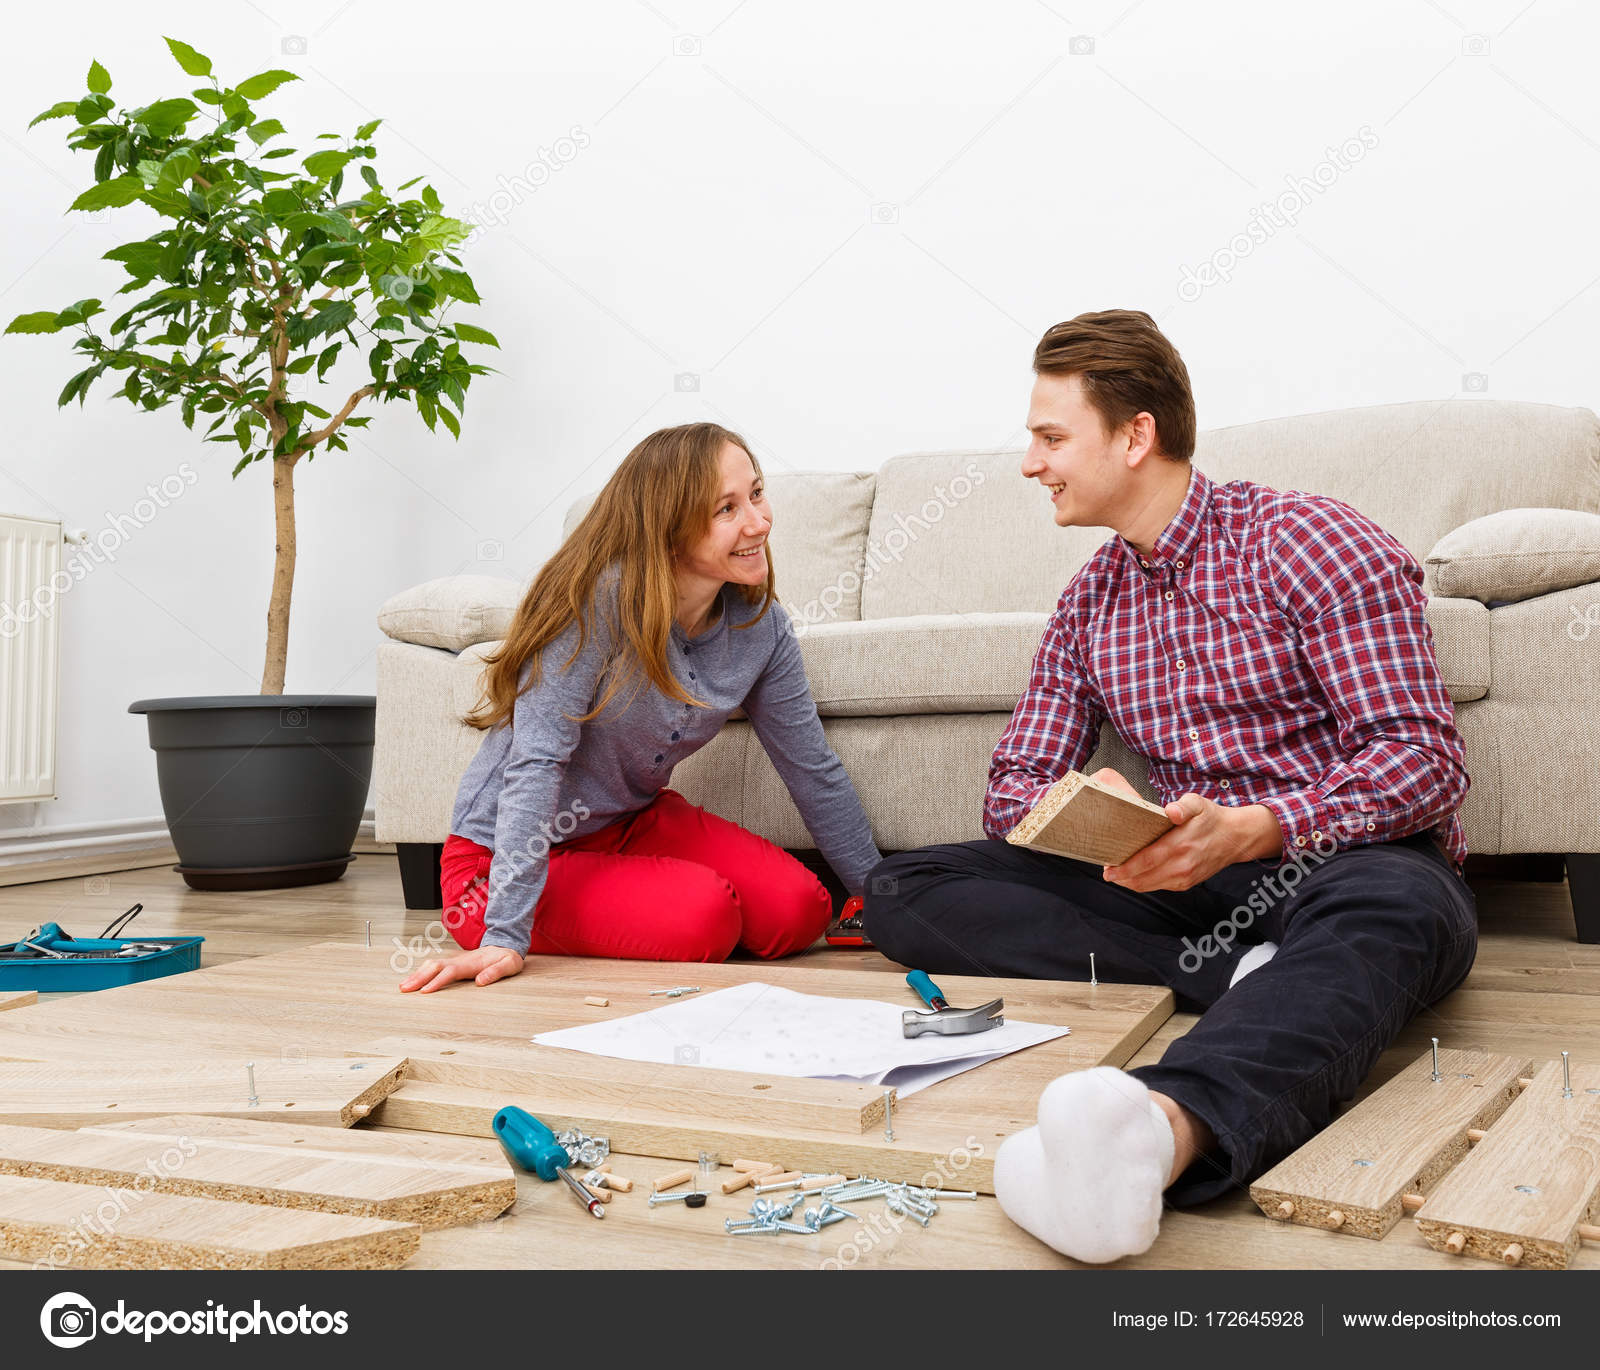 Do it yourself home improvement stock photo obencem 172645928 do it yourself home improvement stock photo solutioingenieria Images